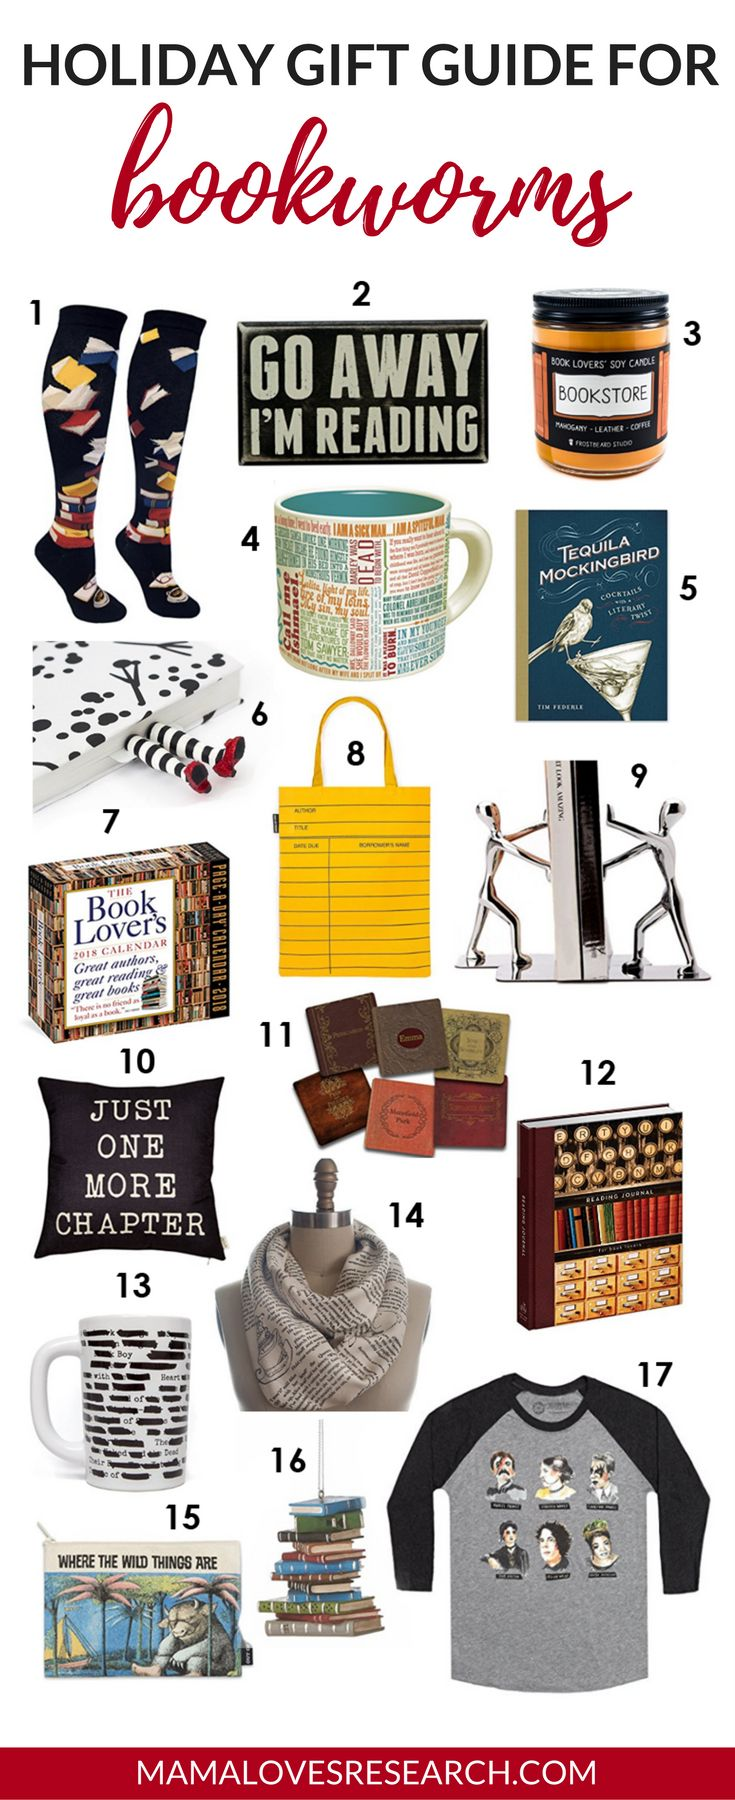 Holiday Gift Guide for Bookworms - Mama Loves Research